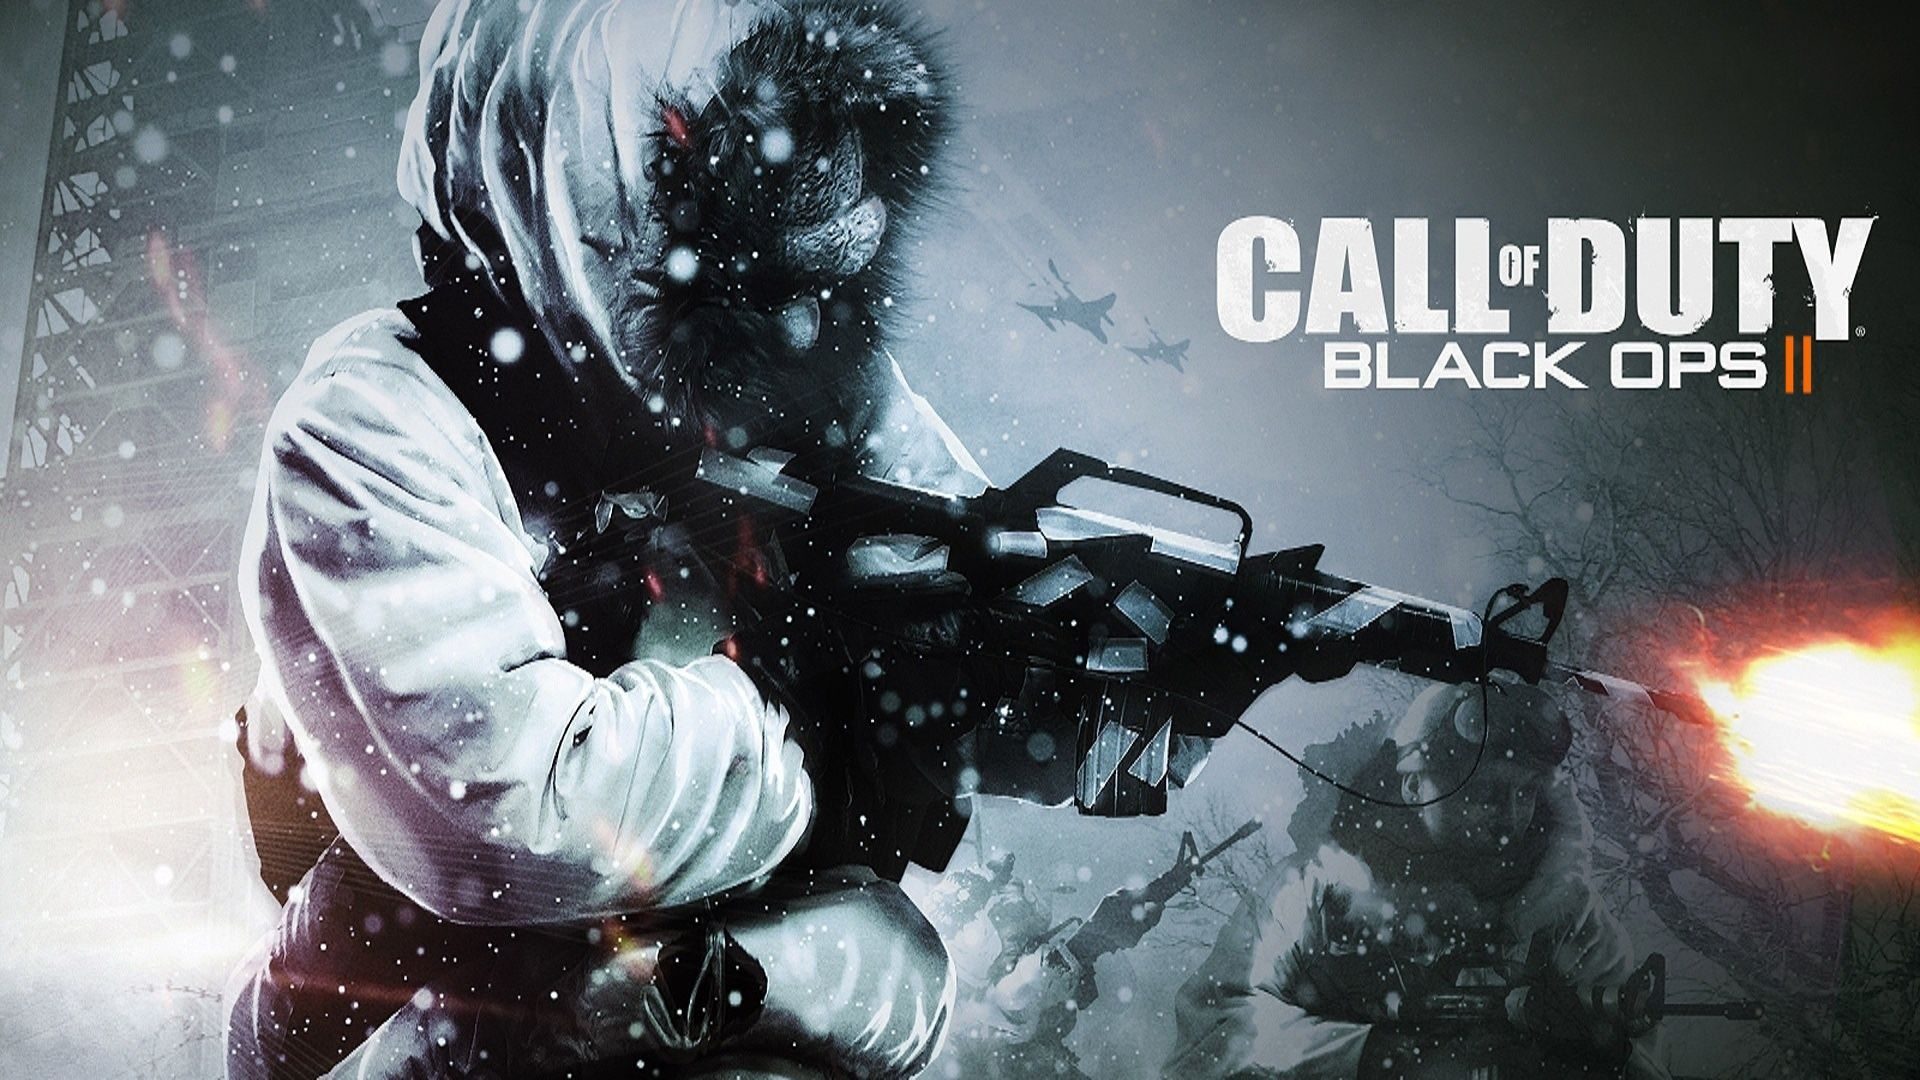 hd wallpapers black ops 2 hd image desktop 2 free wallpaper | gaizan